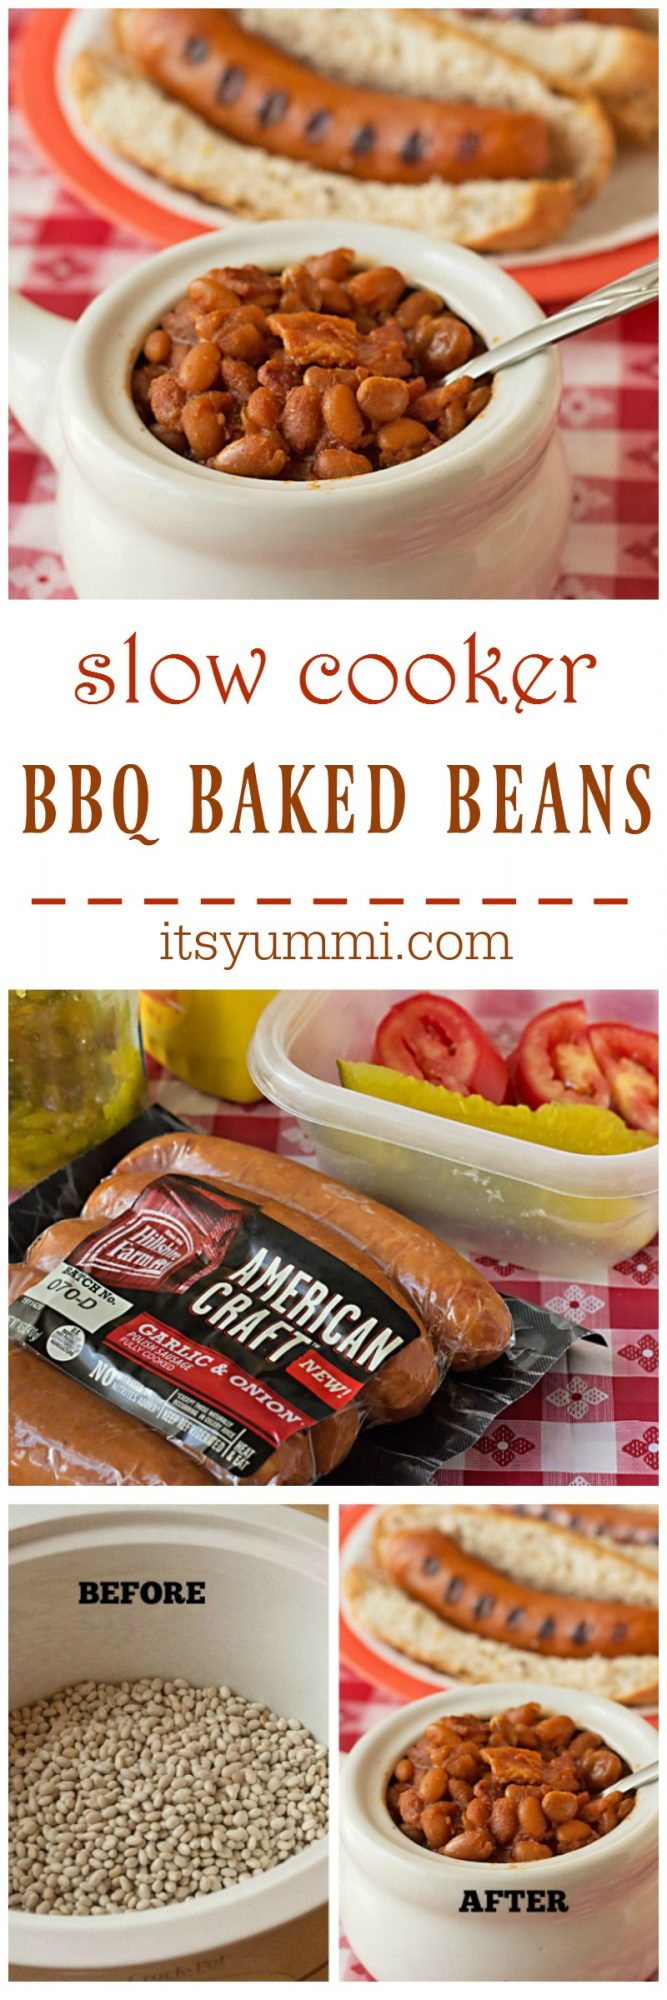 Slow Cooker BBQ Baked Beans Recipe, from @itsyummi at itsyummi.com